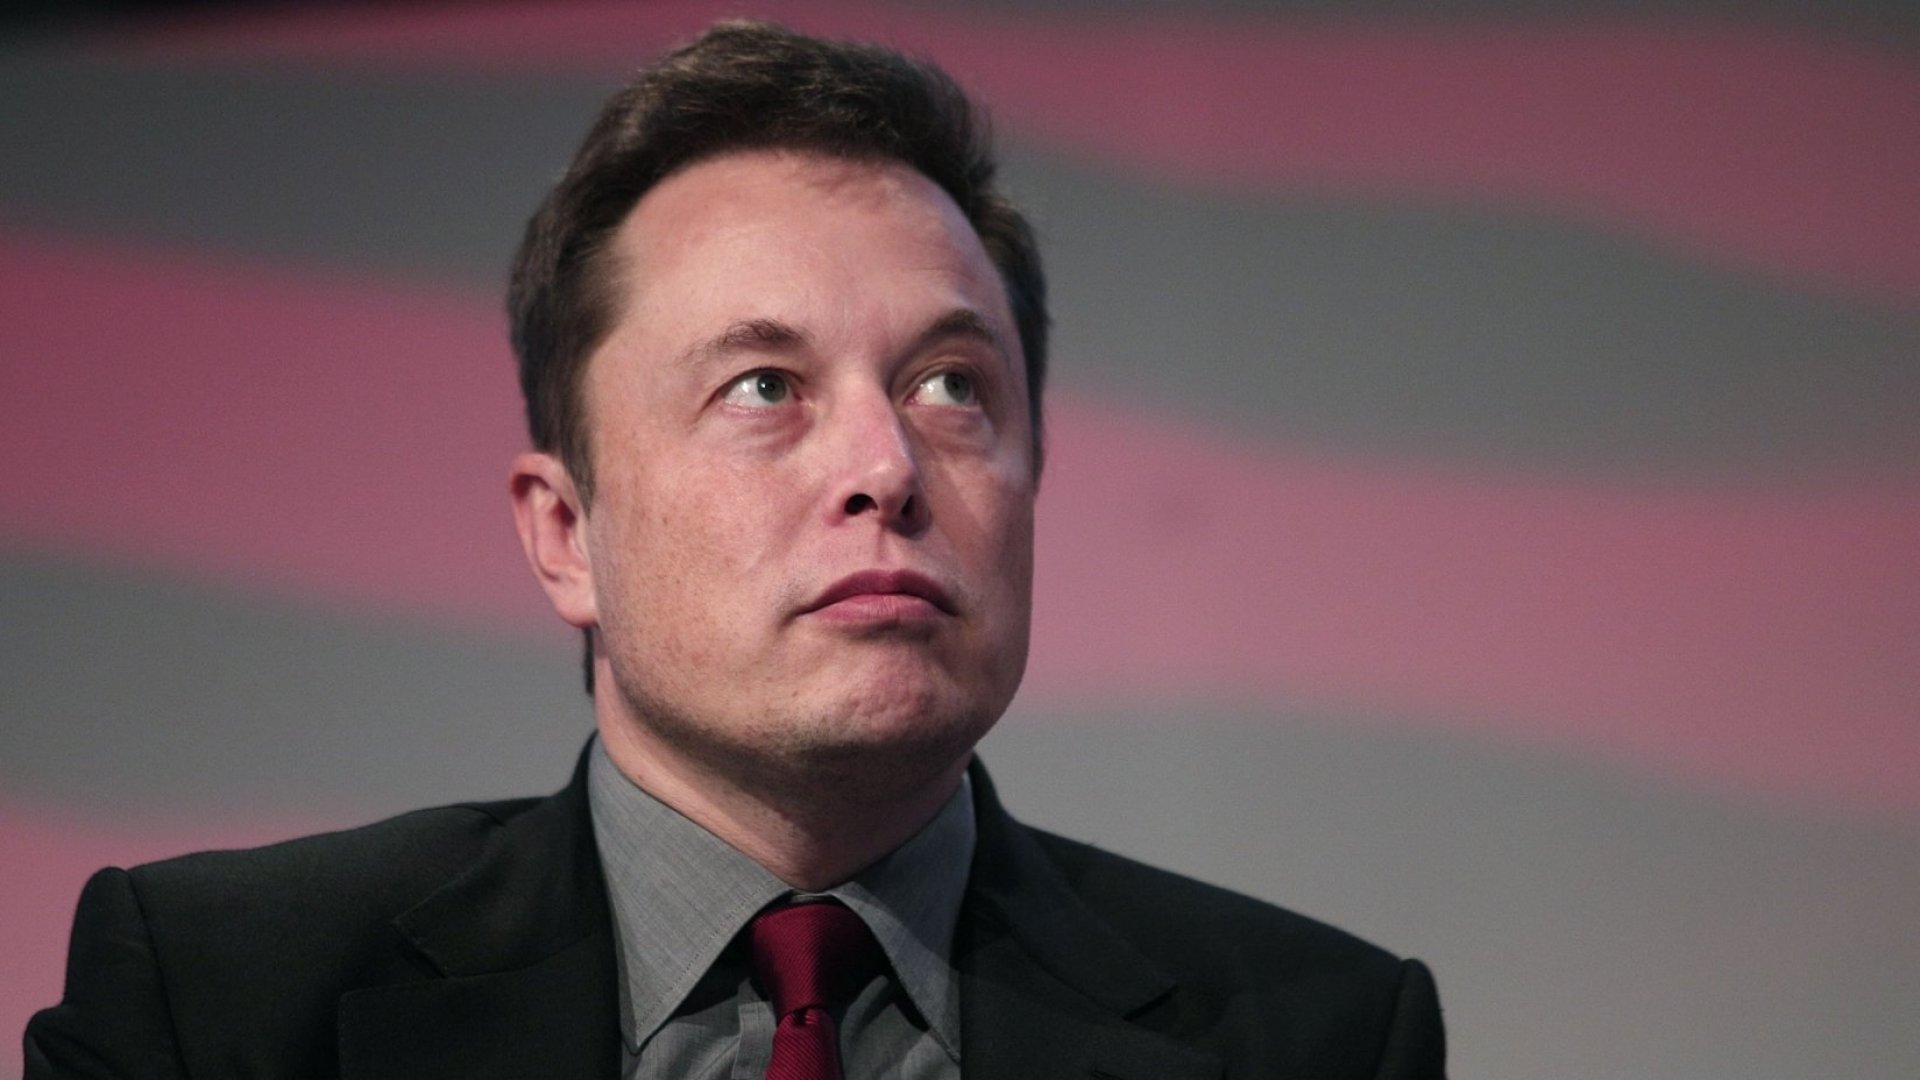 There Are 3 Vital Sentences in the 'Tesla Layoff Email,' and 2 of Them Reveal Something Very Surprising About Elon Musk